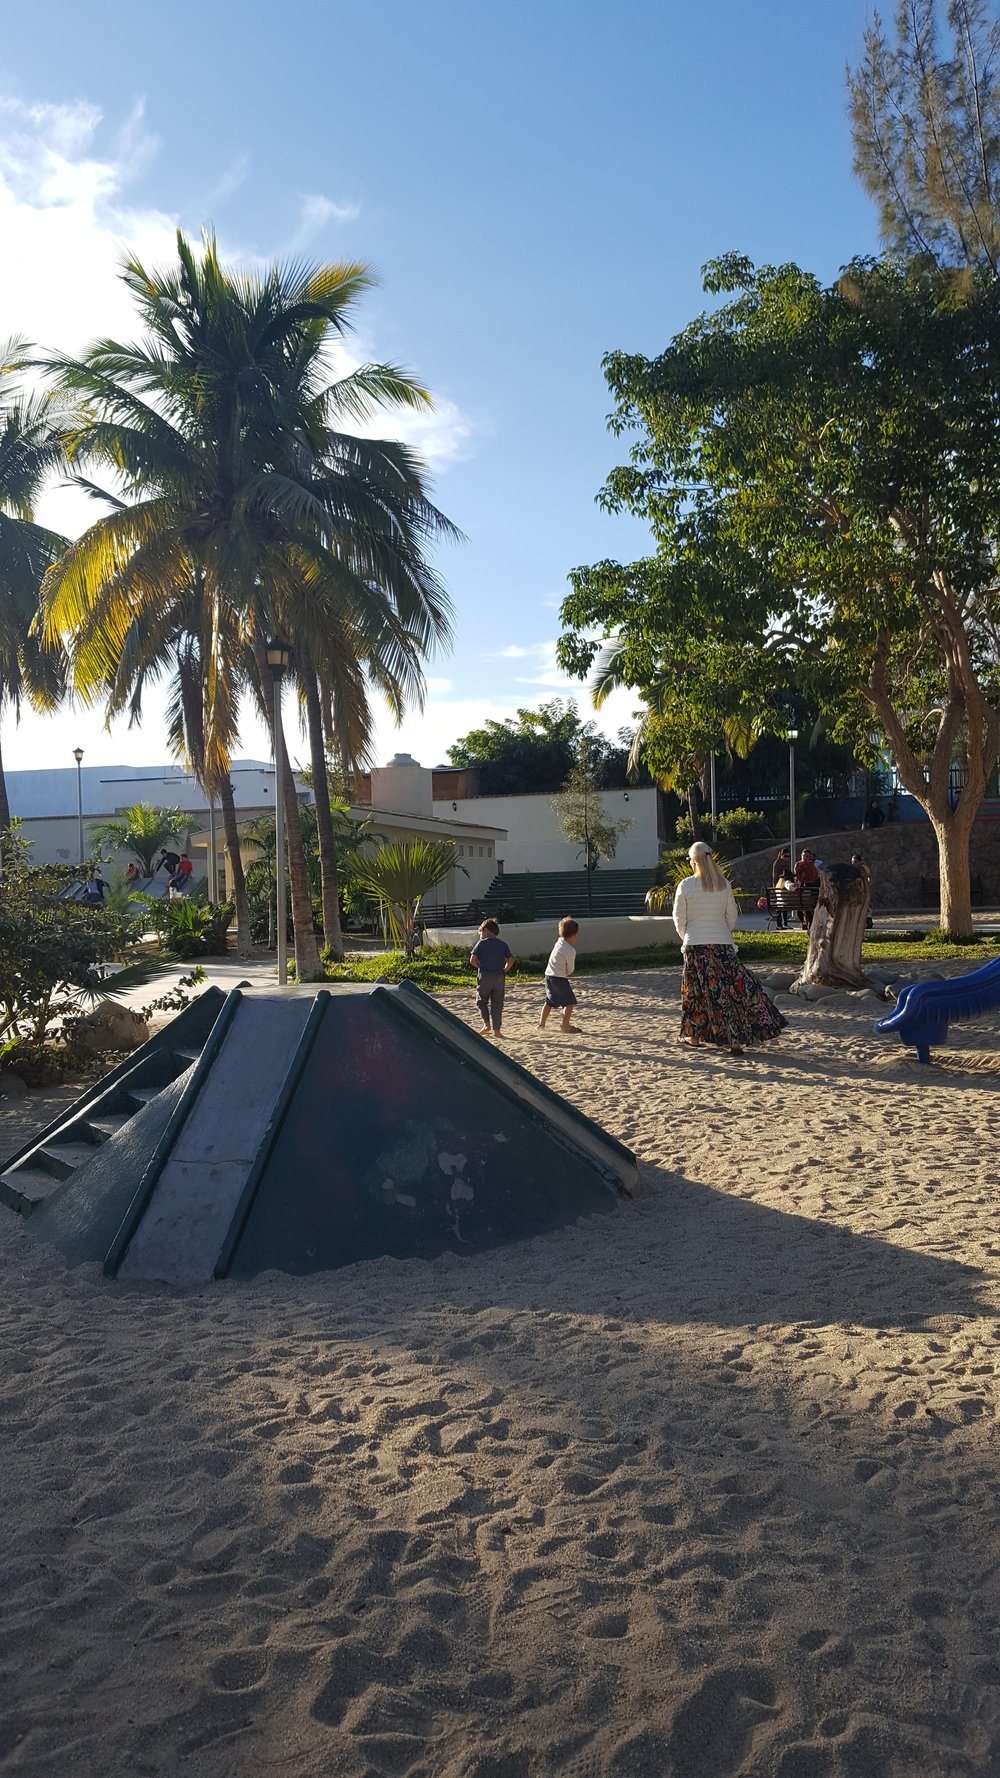 The local in-town playground, Todos Santos